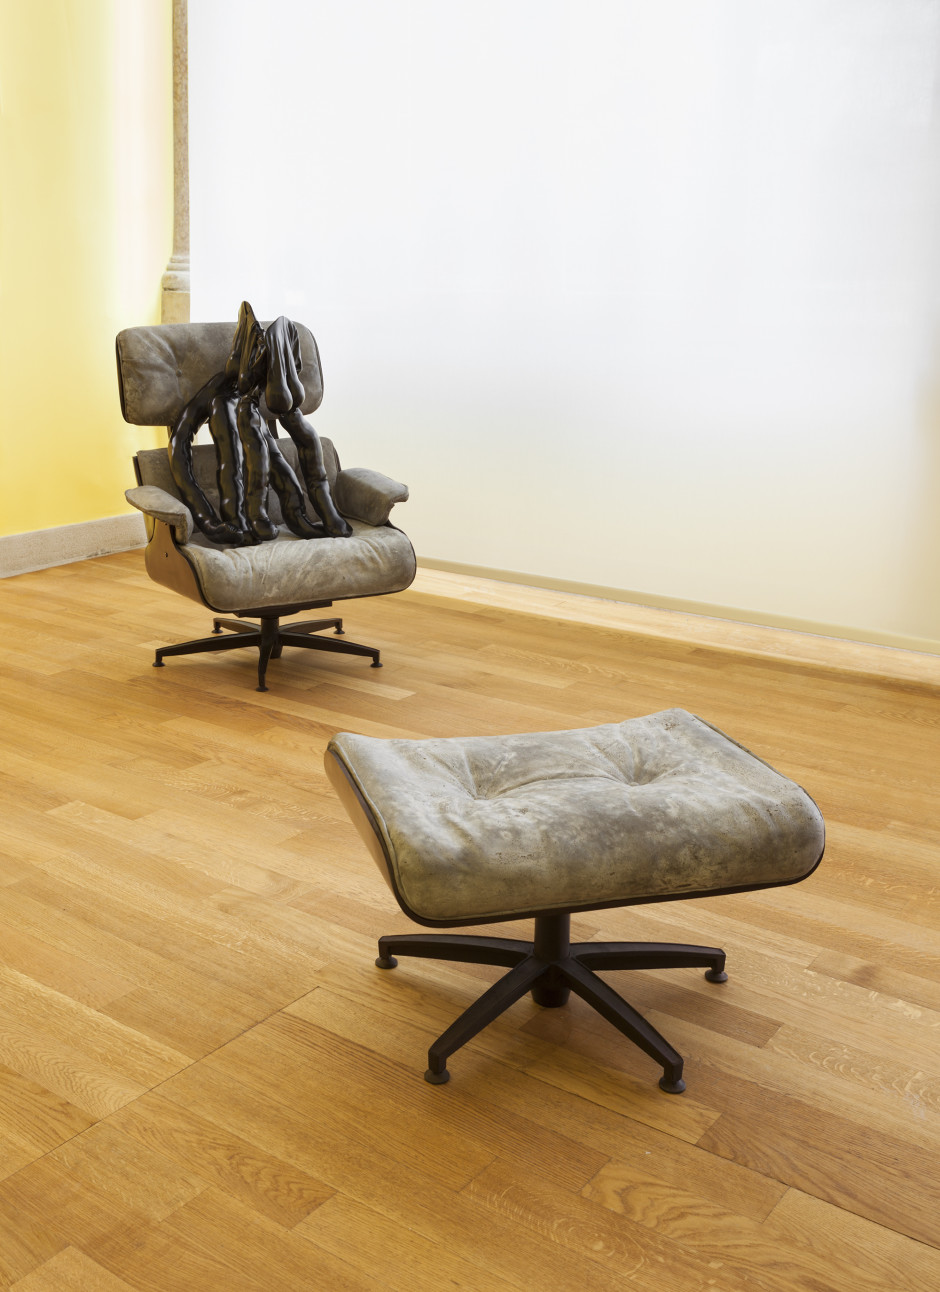 Tit-Cat Eames Chair, 2015  bronze, concrete  103.0 x 81.0 x 78.0 cm 40 1/2 x 31 7/8 x 30 11/16 in.